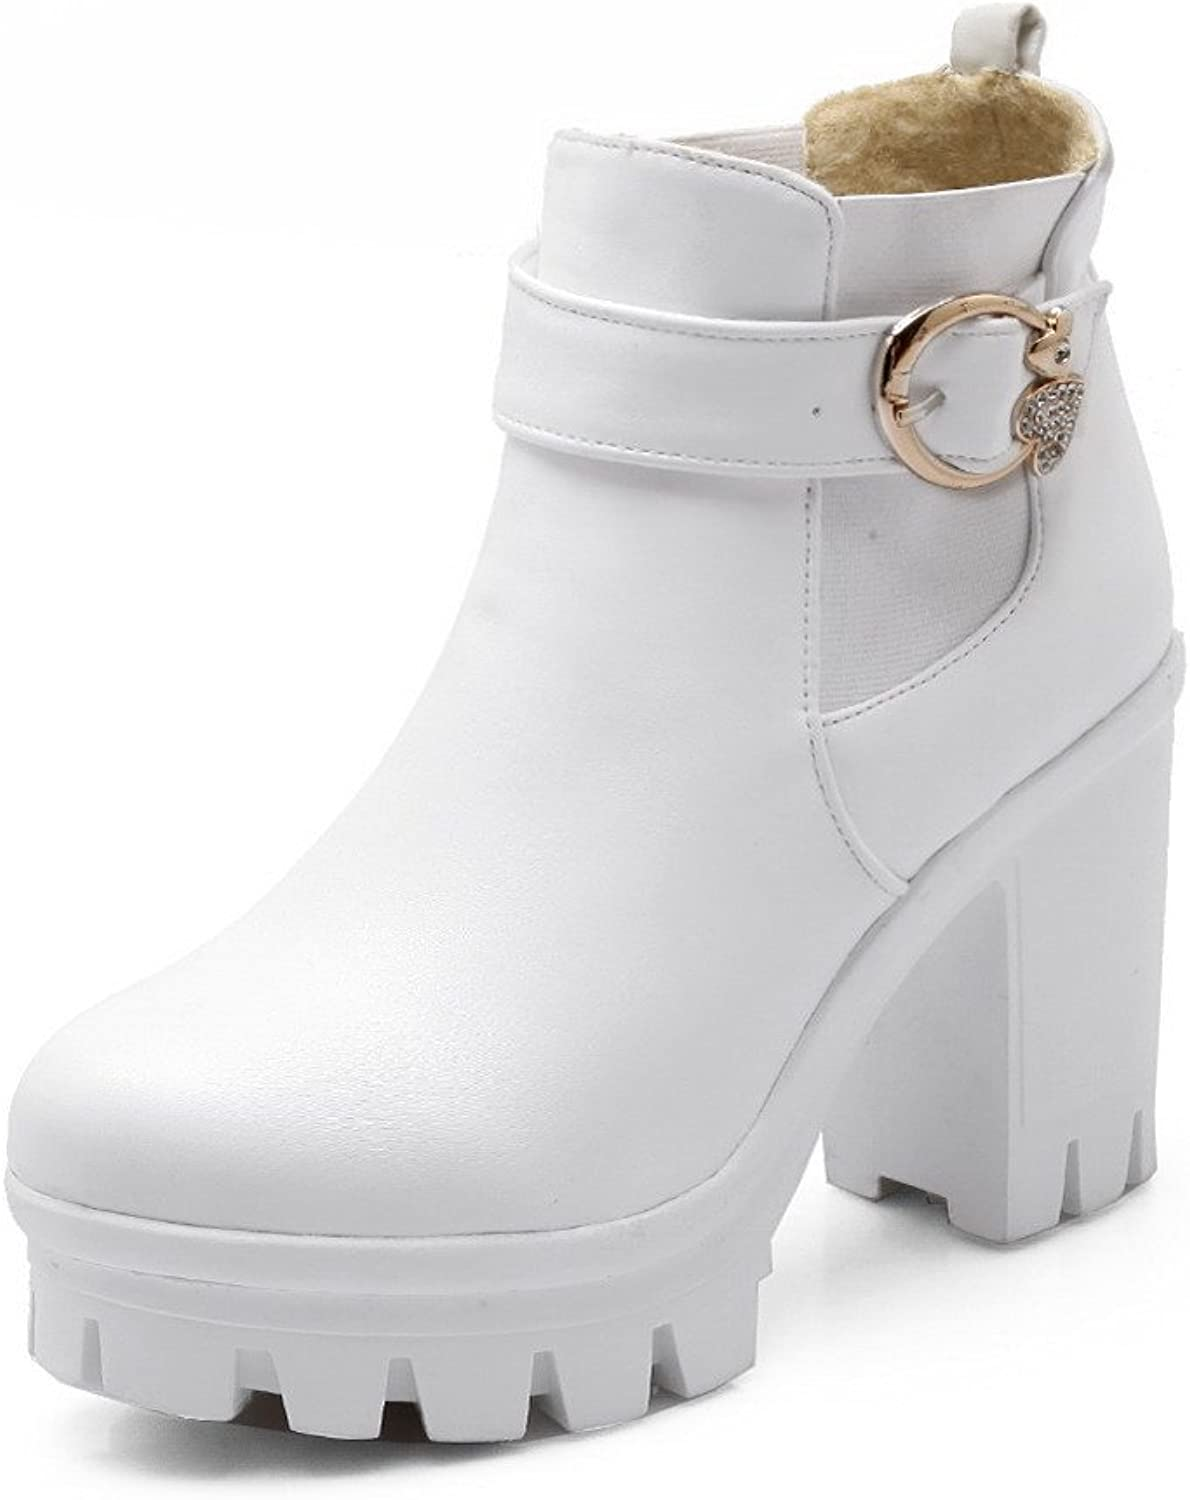 AllhqFashion Women's PU Ankle-high Solid Pull-On High-Heels Boots